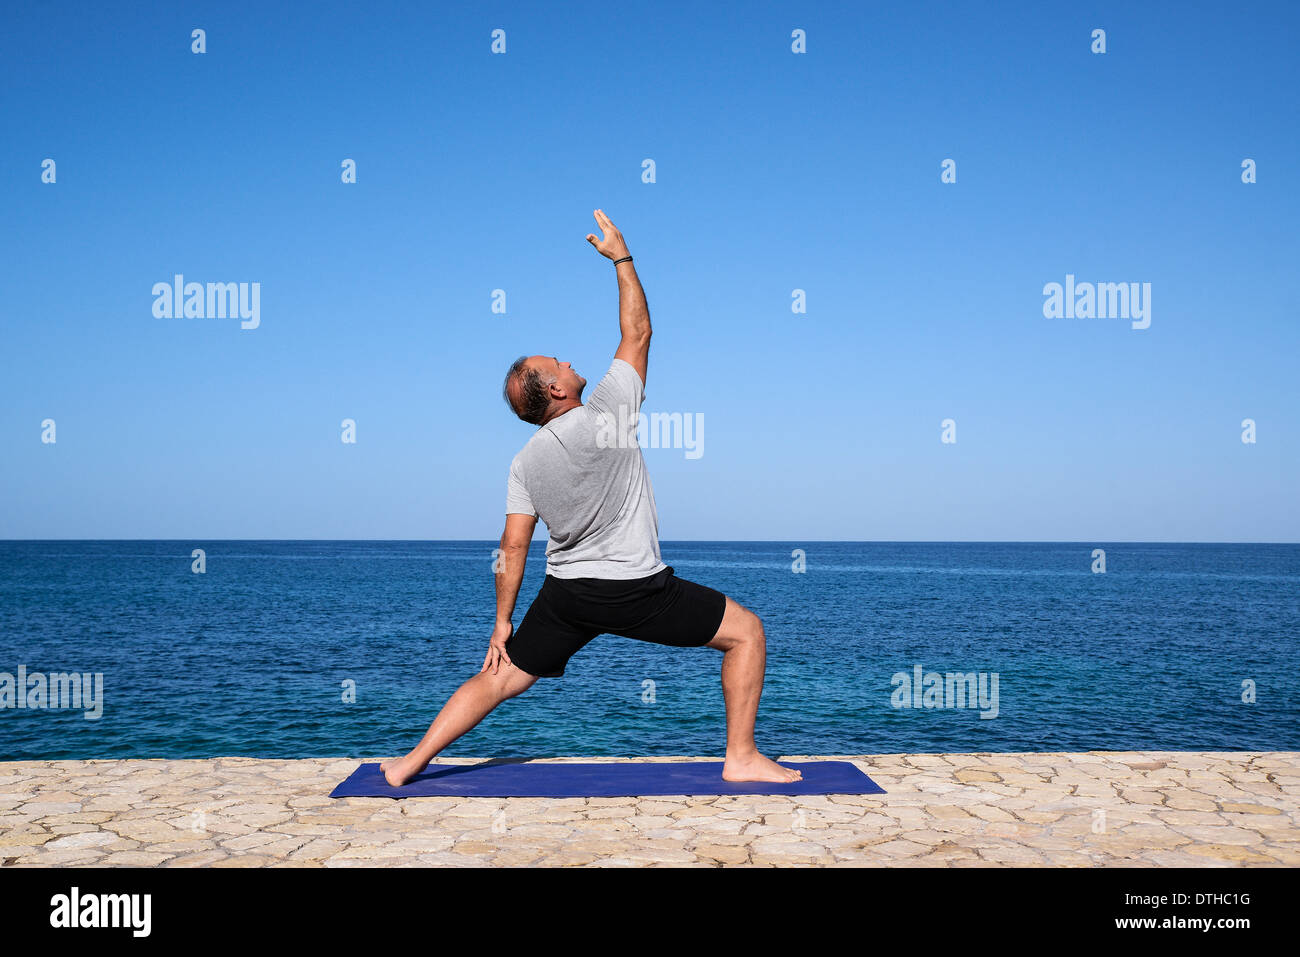 Man practice yoga meditation from an ocean waterfront ledge, Negril, Jamaica. - Stock Image